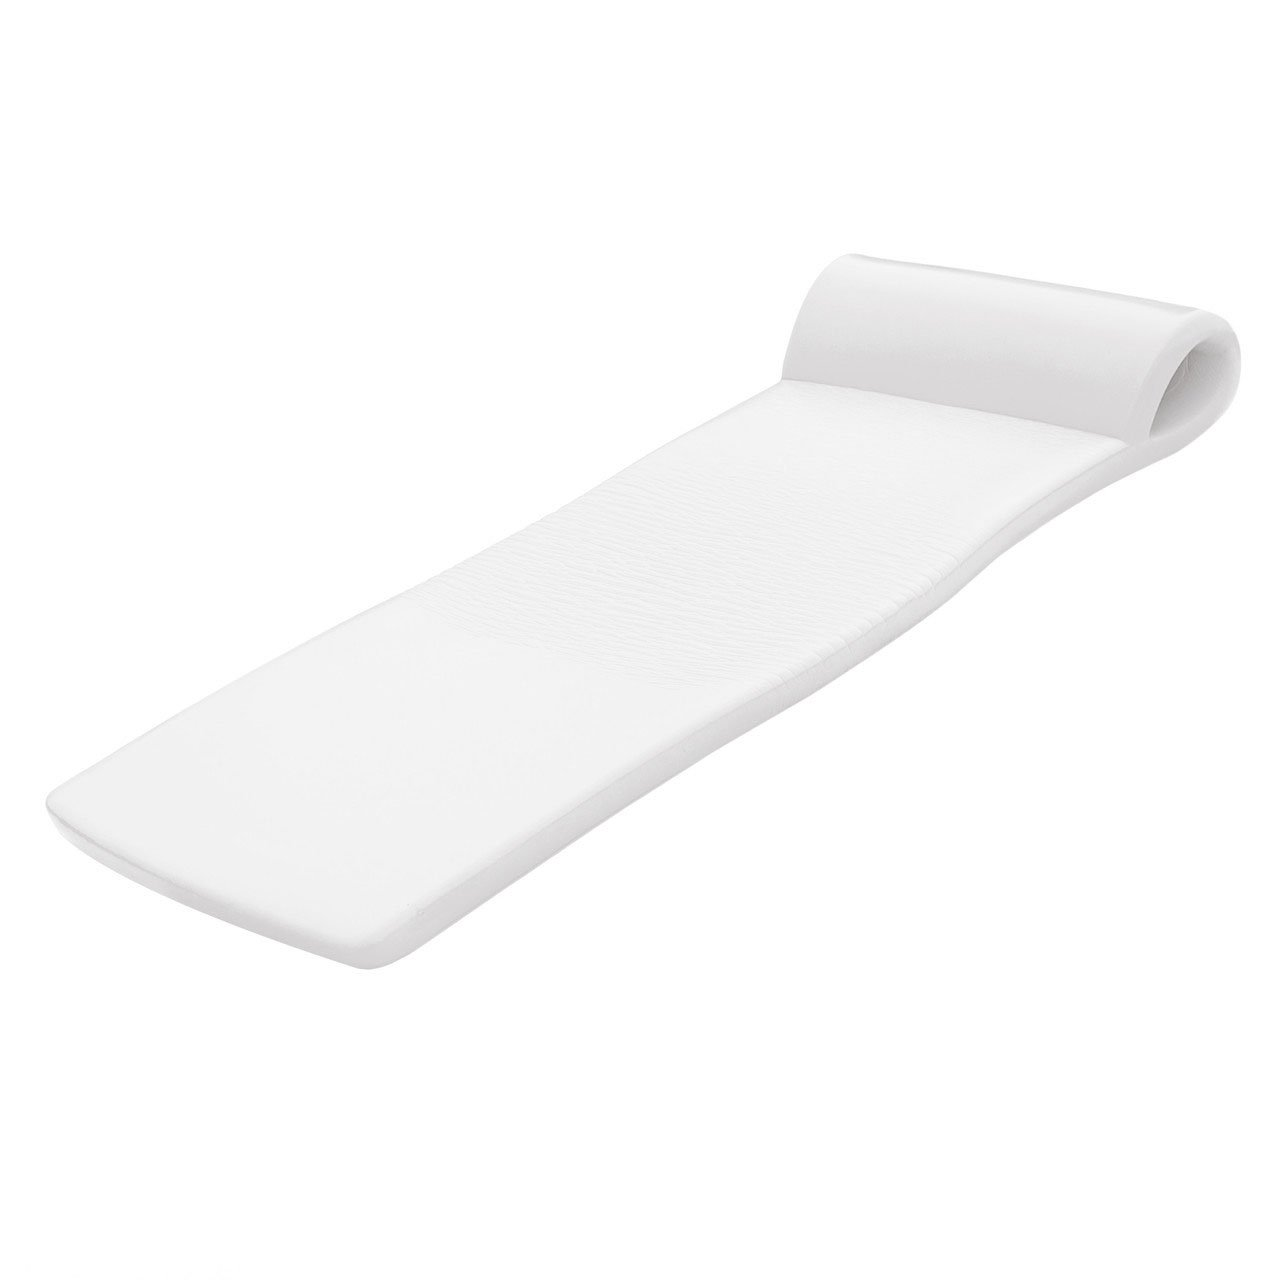 TRC Recreation Sunsation 70 Inch Thick Foam Raft Lounger Mat Pool Float, White (2 Pack) by TRC Recreation (Image #2)